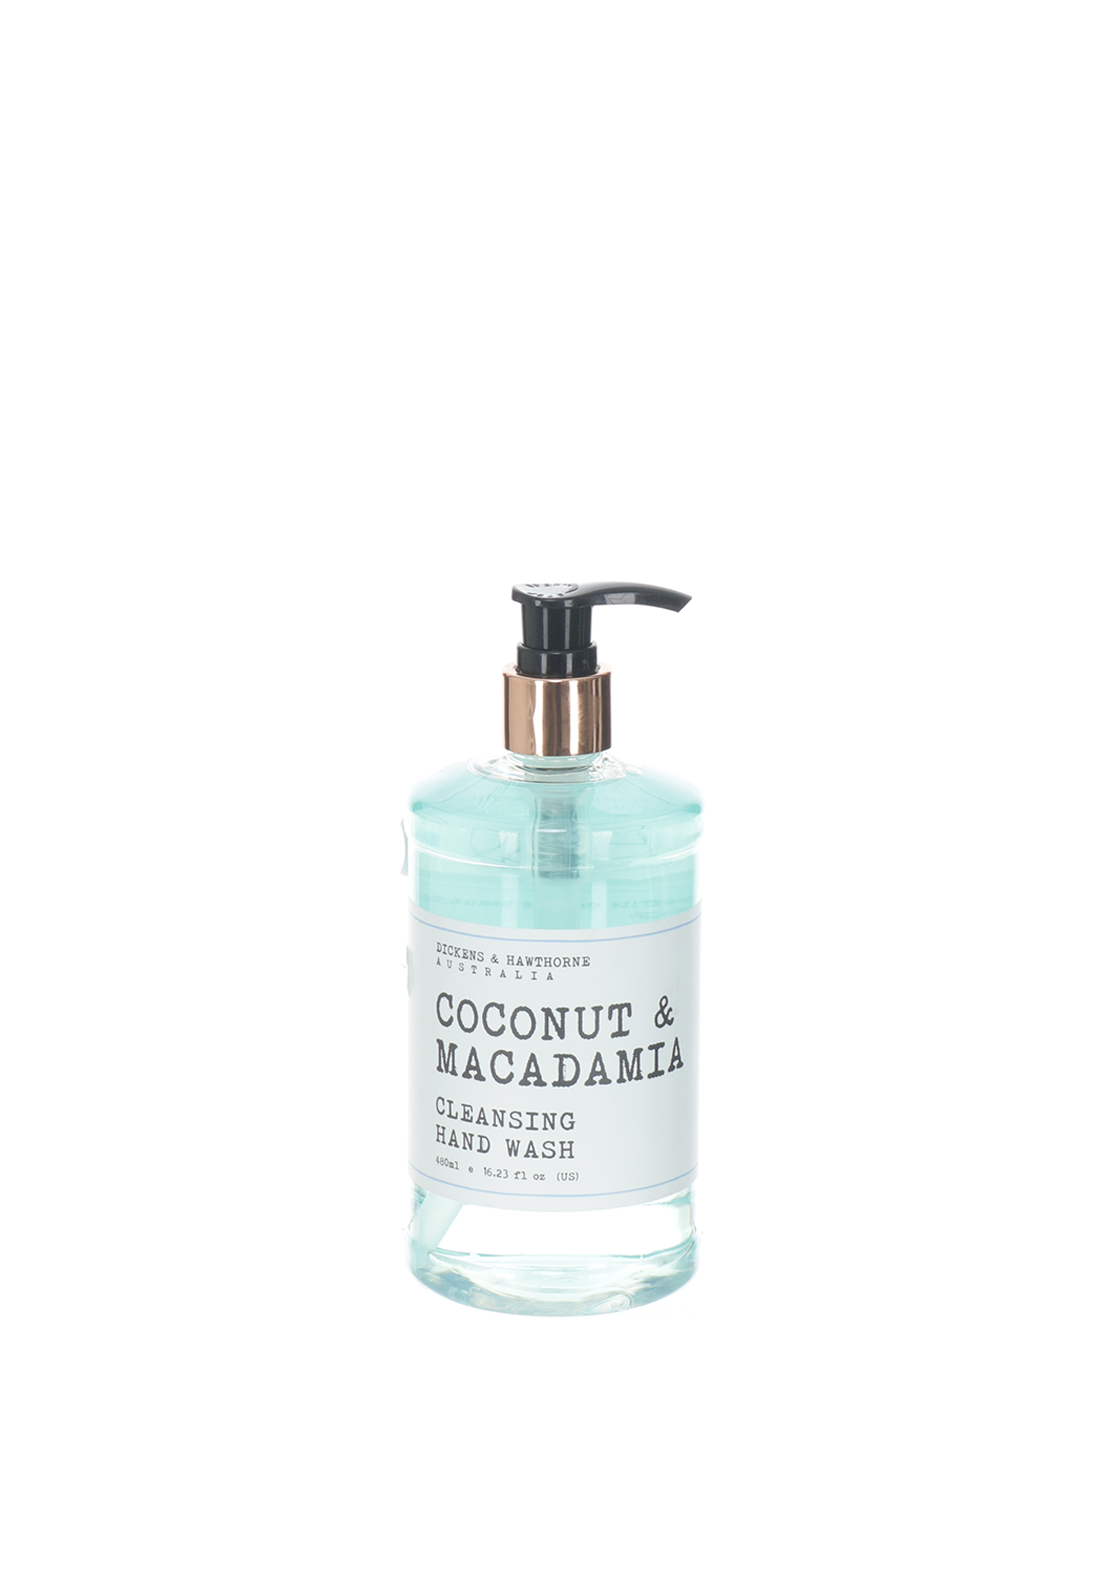 Dickens & Hawthorne Coconut & Macadamia Cleansing Hand Wash, 480ml